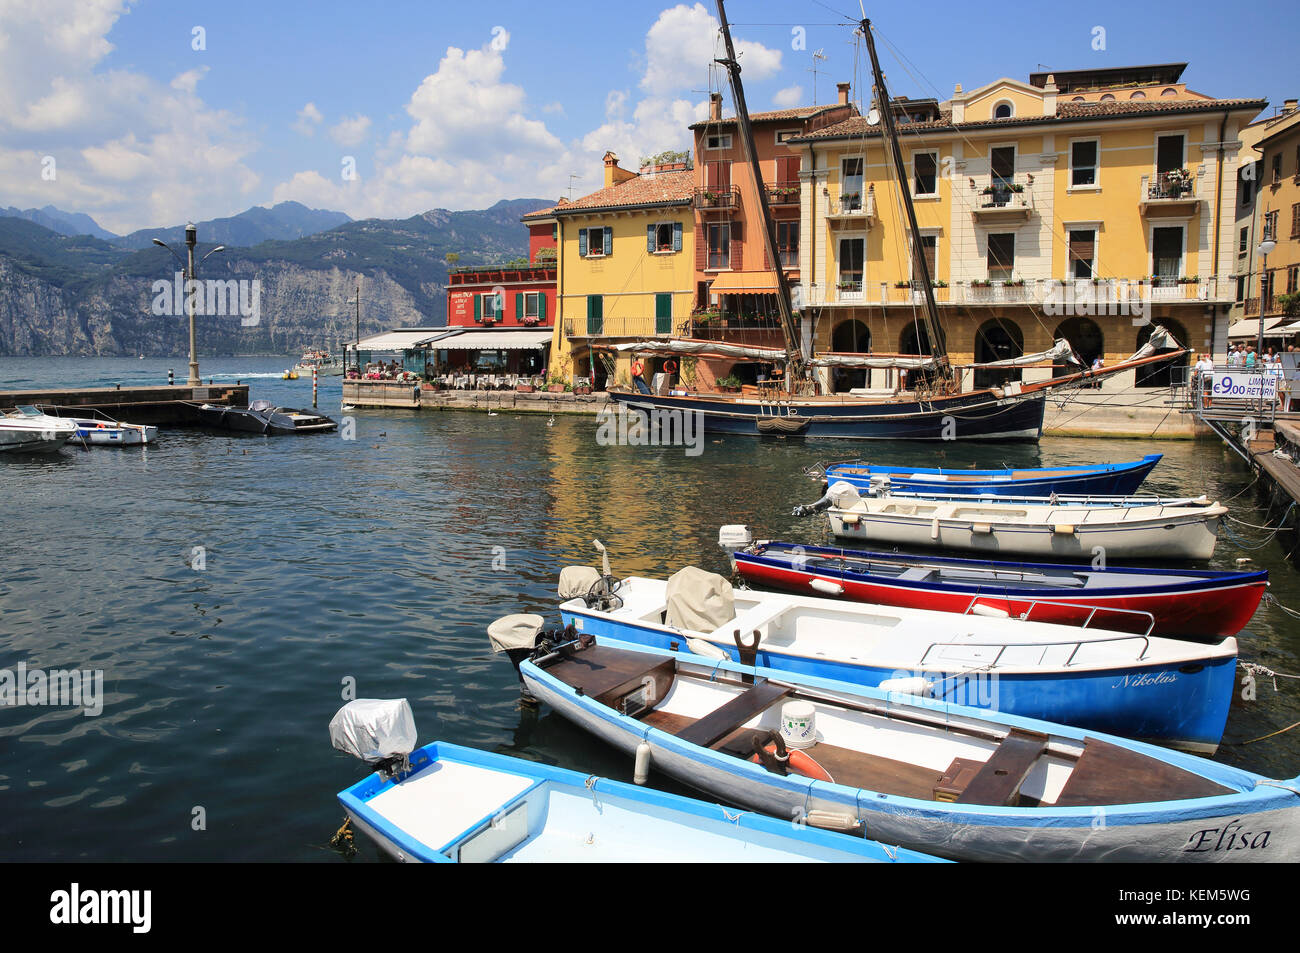 Malcesine, on Lake Garda, in the Lombardy region, in north Italy Stock Photo